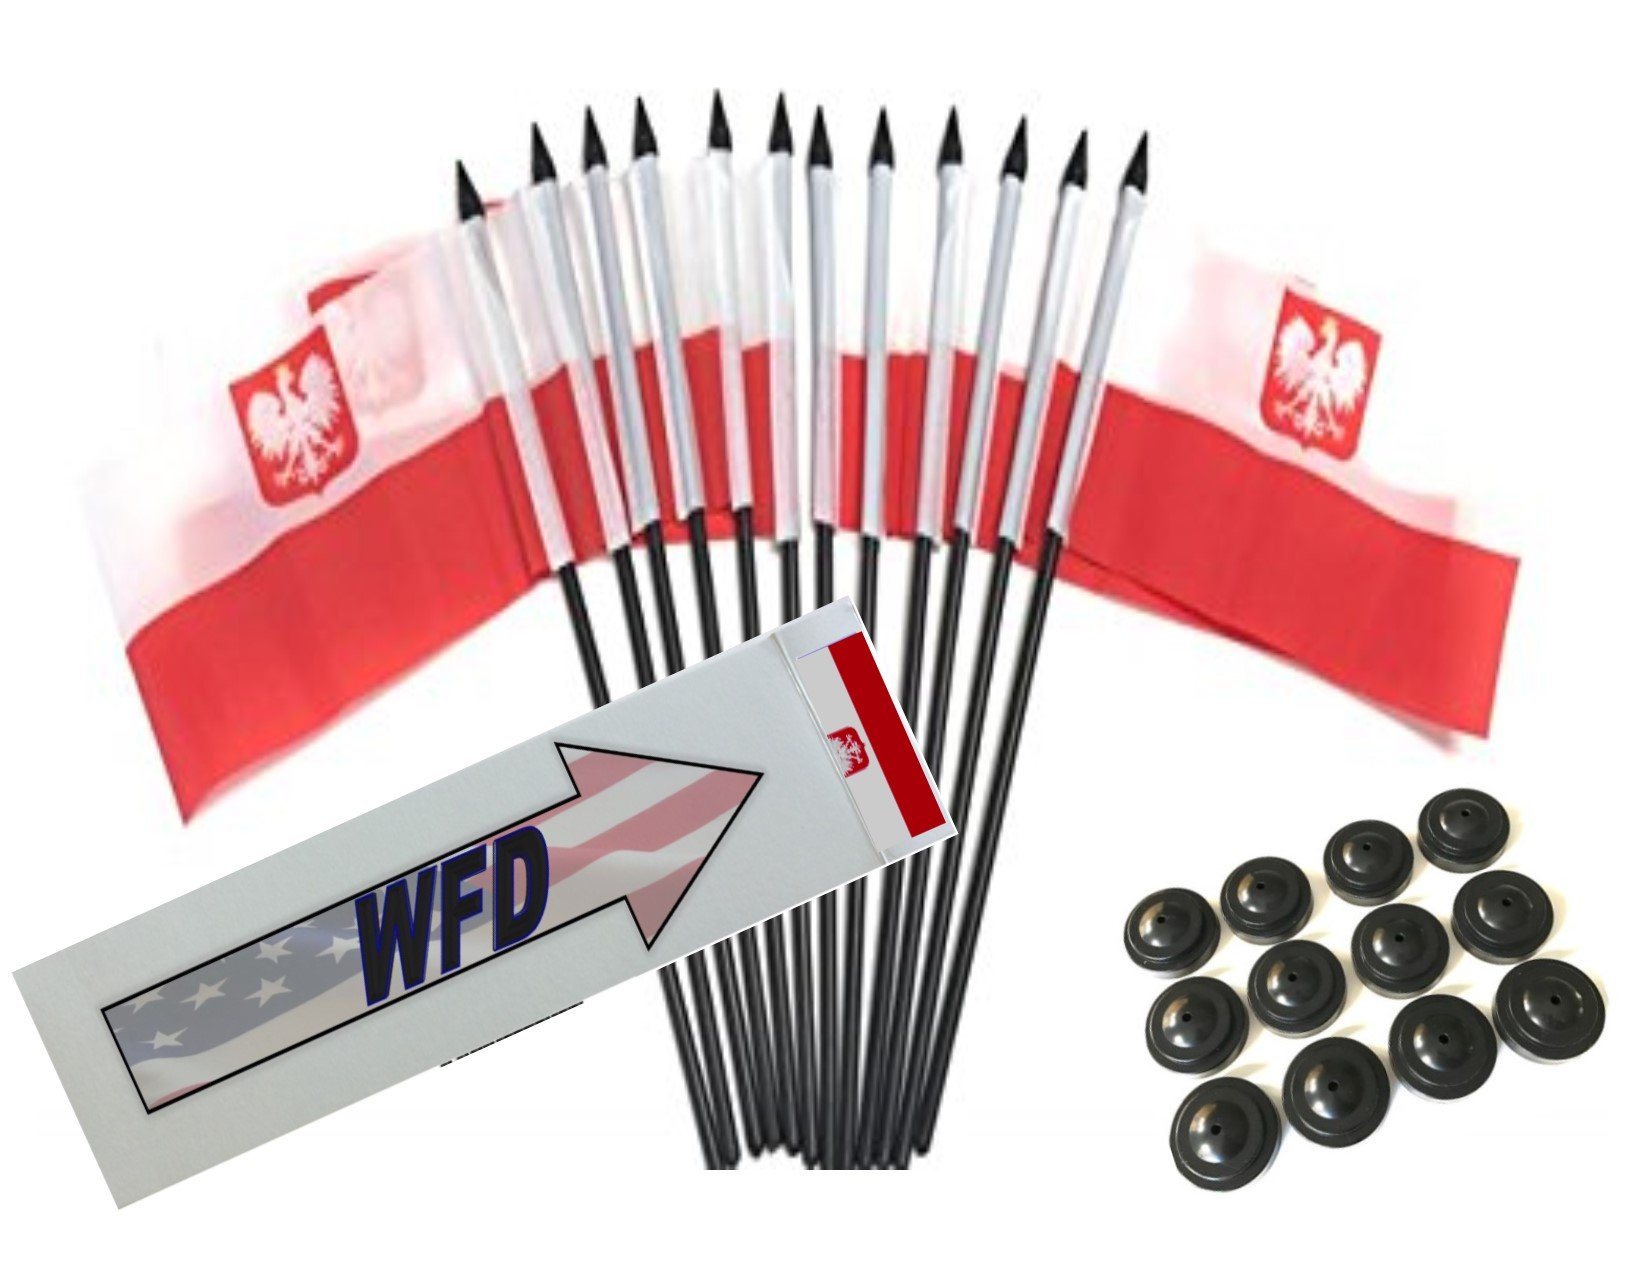 Pack of 12 4''x6'' Poland Eagle Polyester Miniature Desk & Little Table Flags, 1 Dozen 4''x 6'' Polish Eagle Small Mini Hand Waving Stick Flags with 12 Flag Bases (Stands)